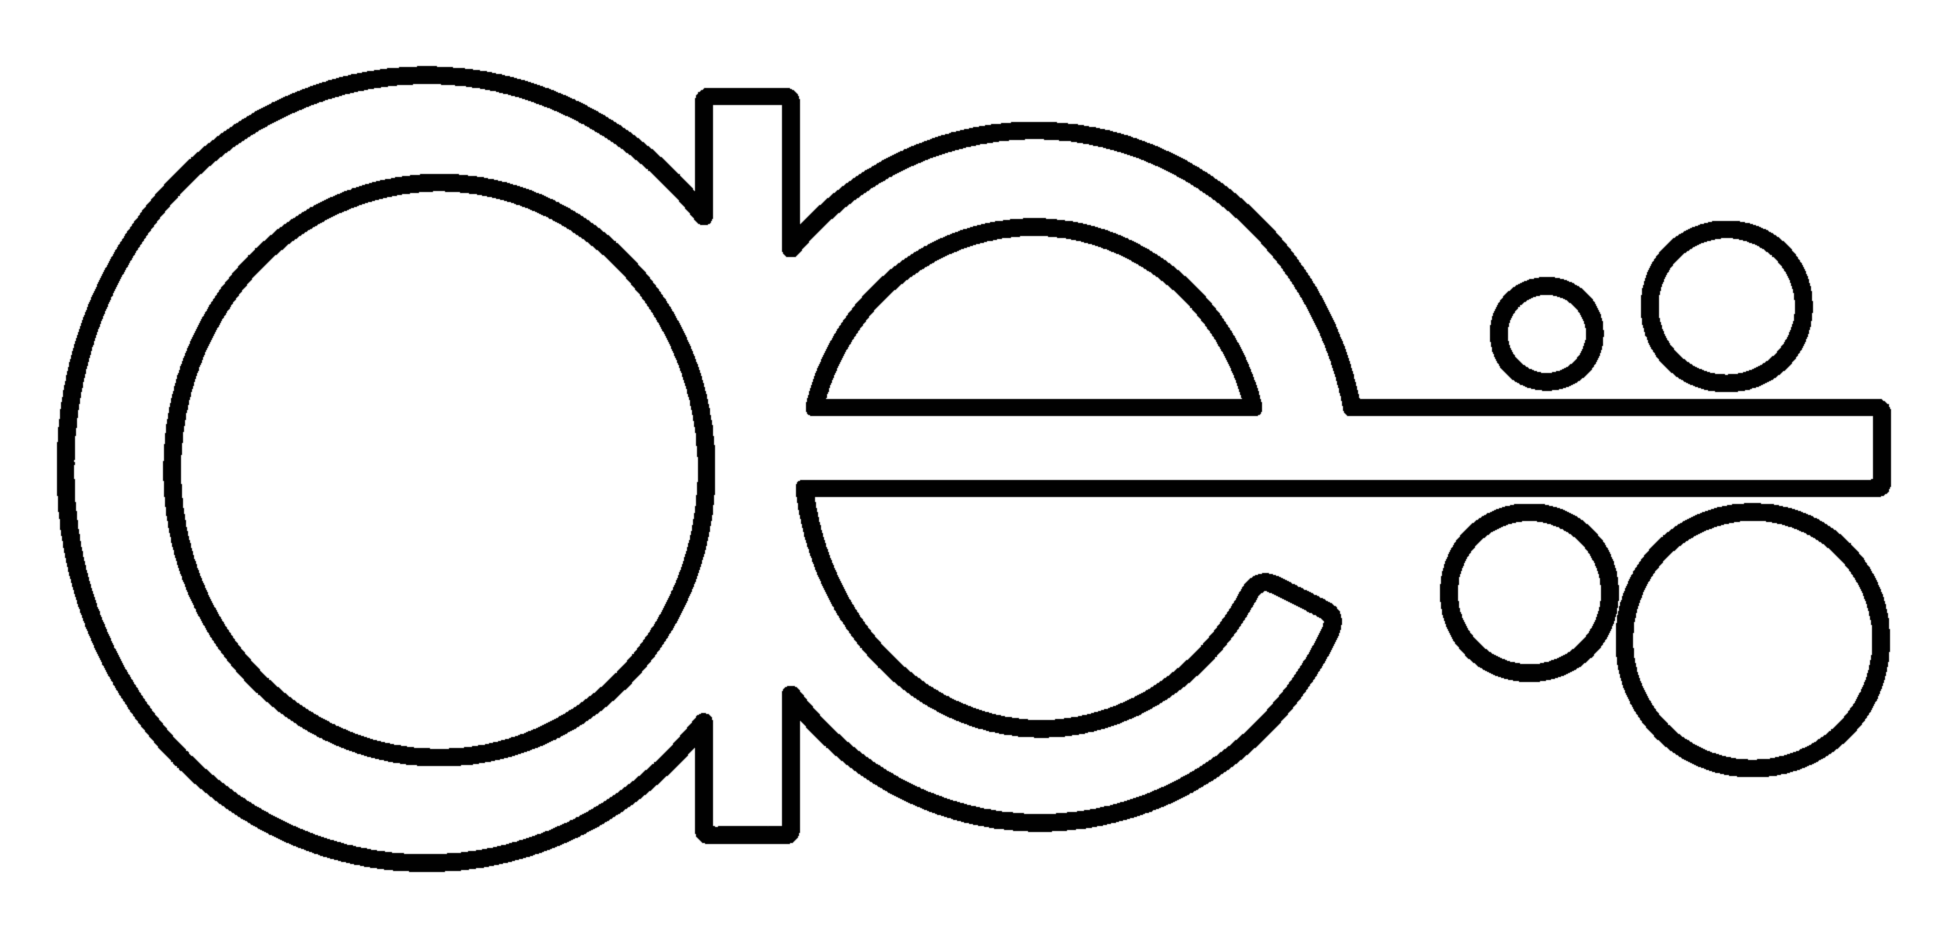 AMCO_logo_black_outline.png